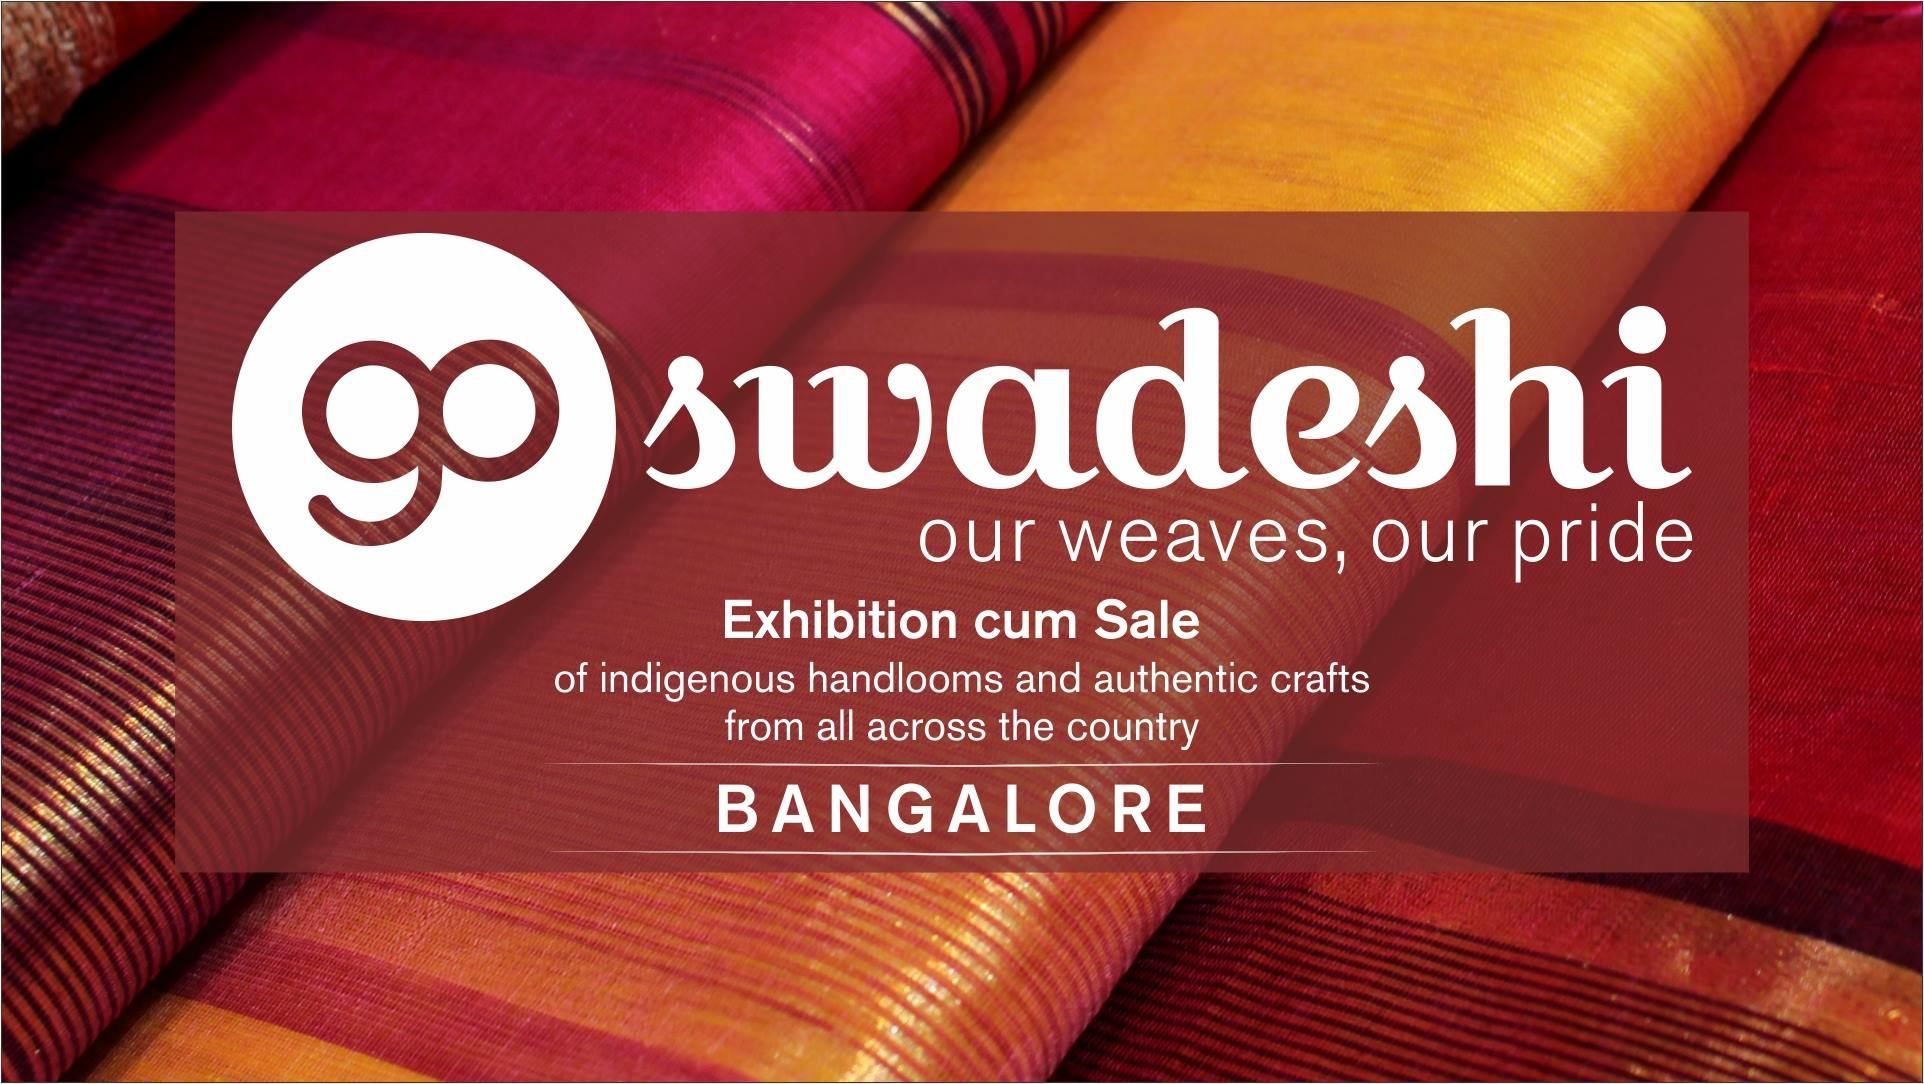 GoSwadeshi in Bangalore